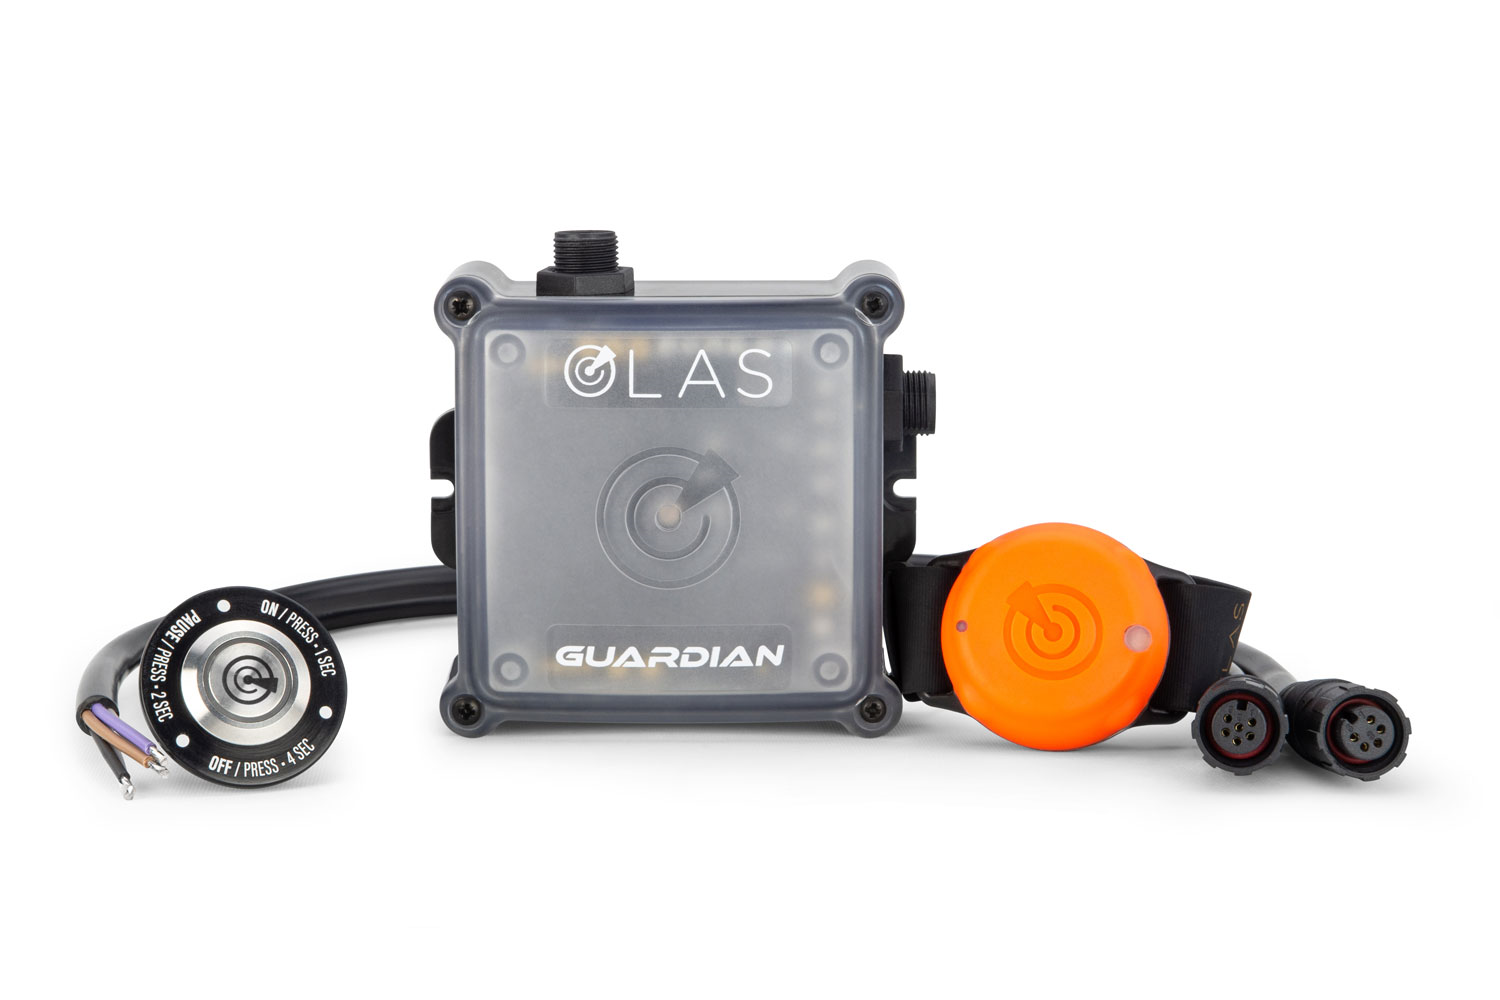 Announcing the OLAS Guardian wireless engine kill switch and overboard alarm from Exposure OLAS